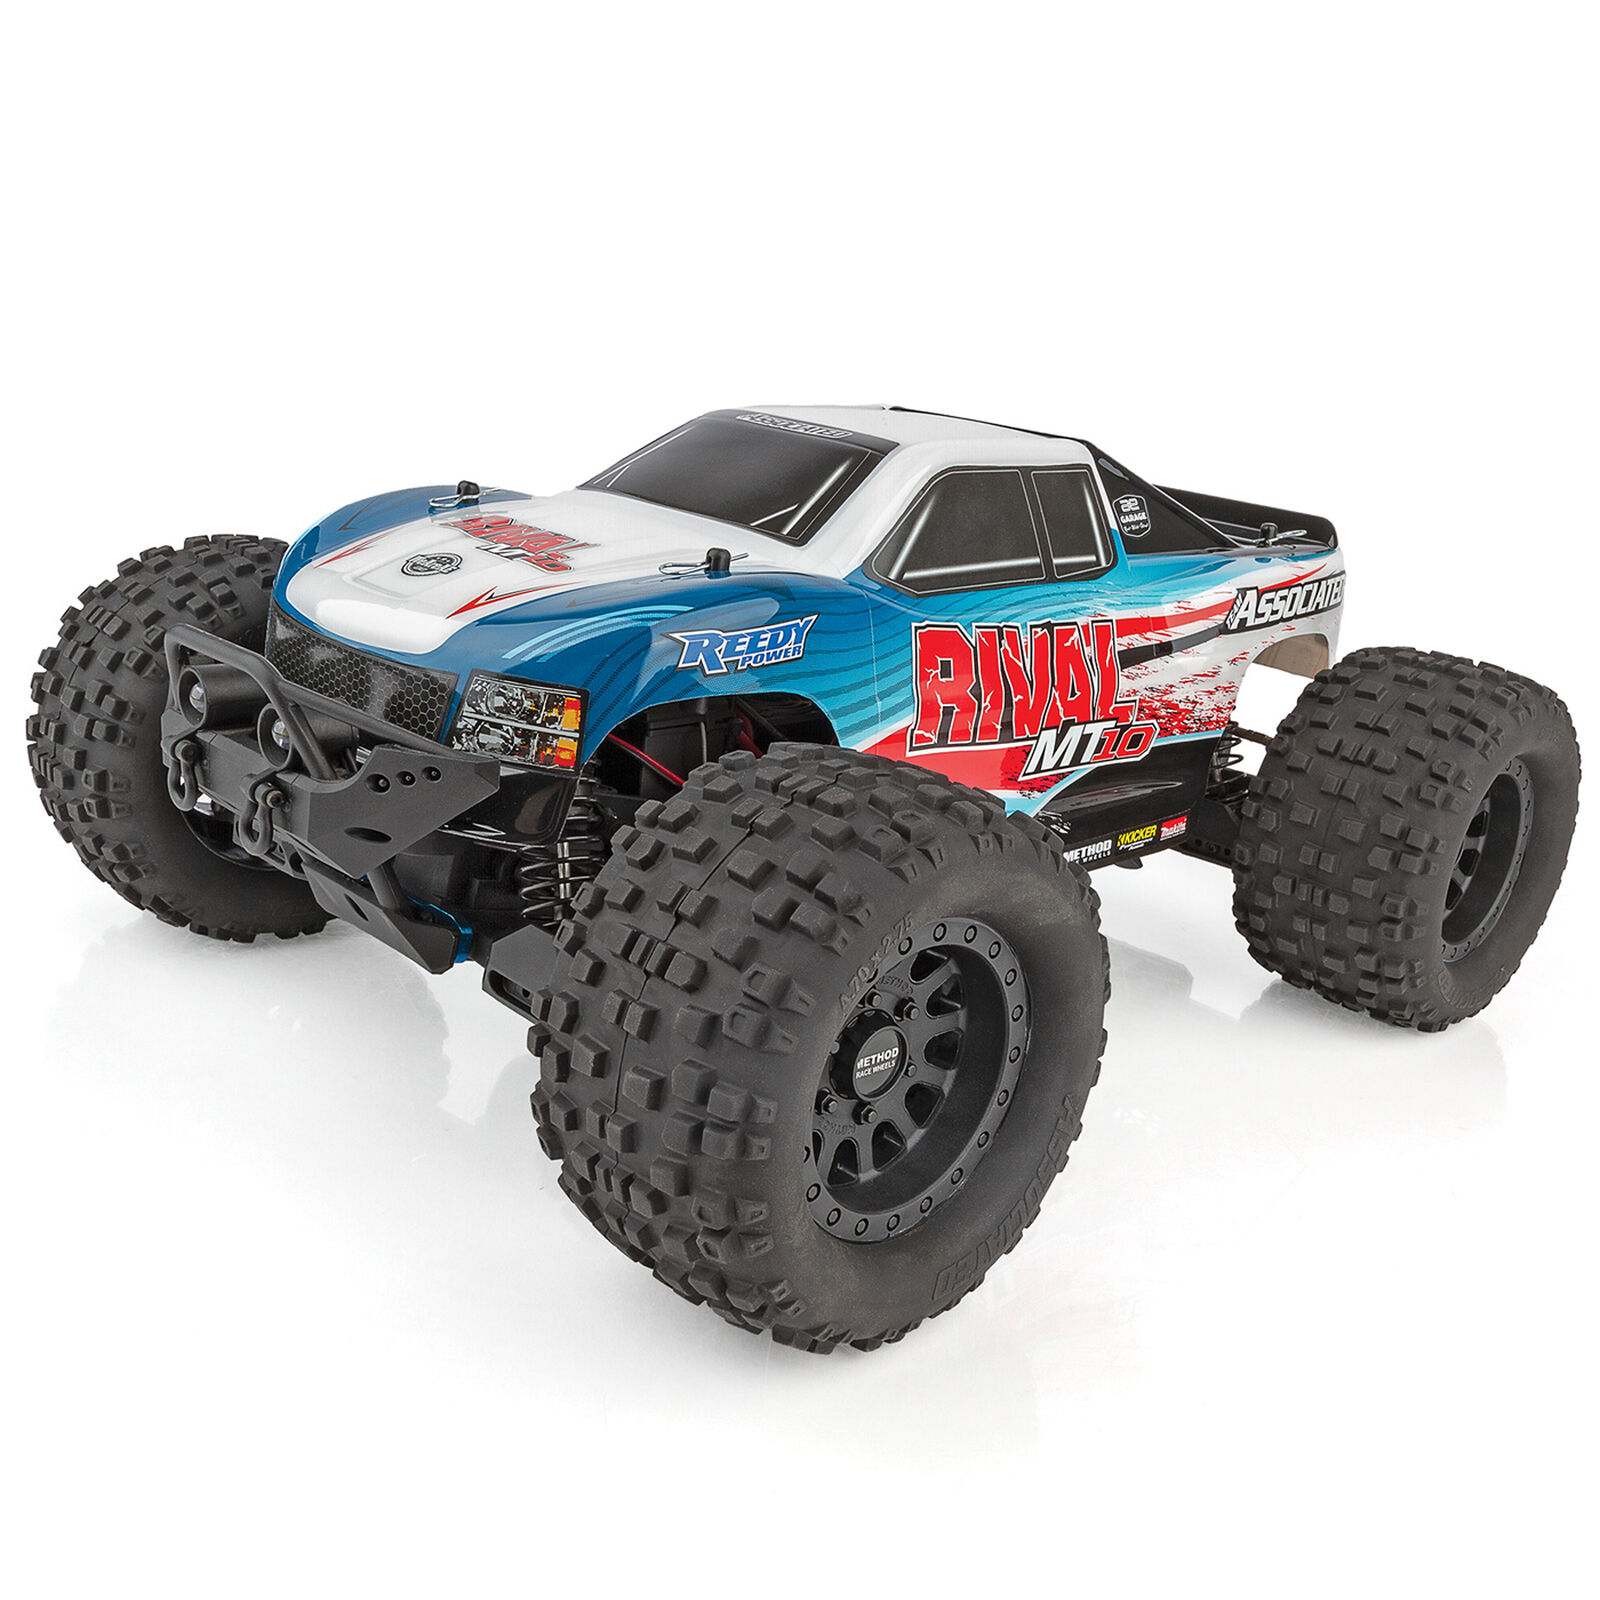 1/10 Rival MT10 4WD Monster Truck Brushless RTR Combo